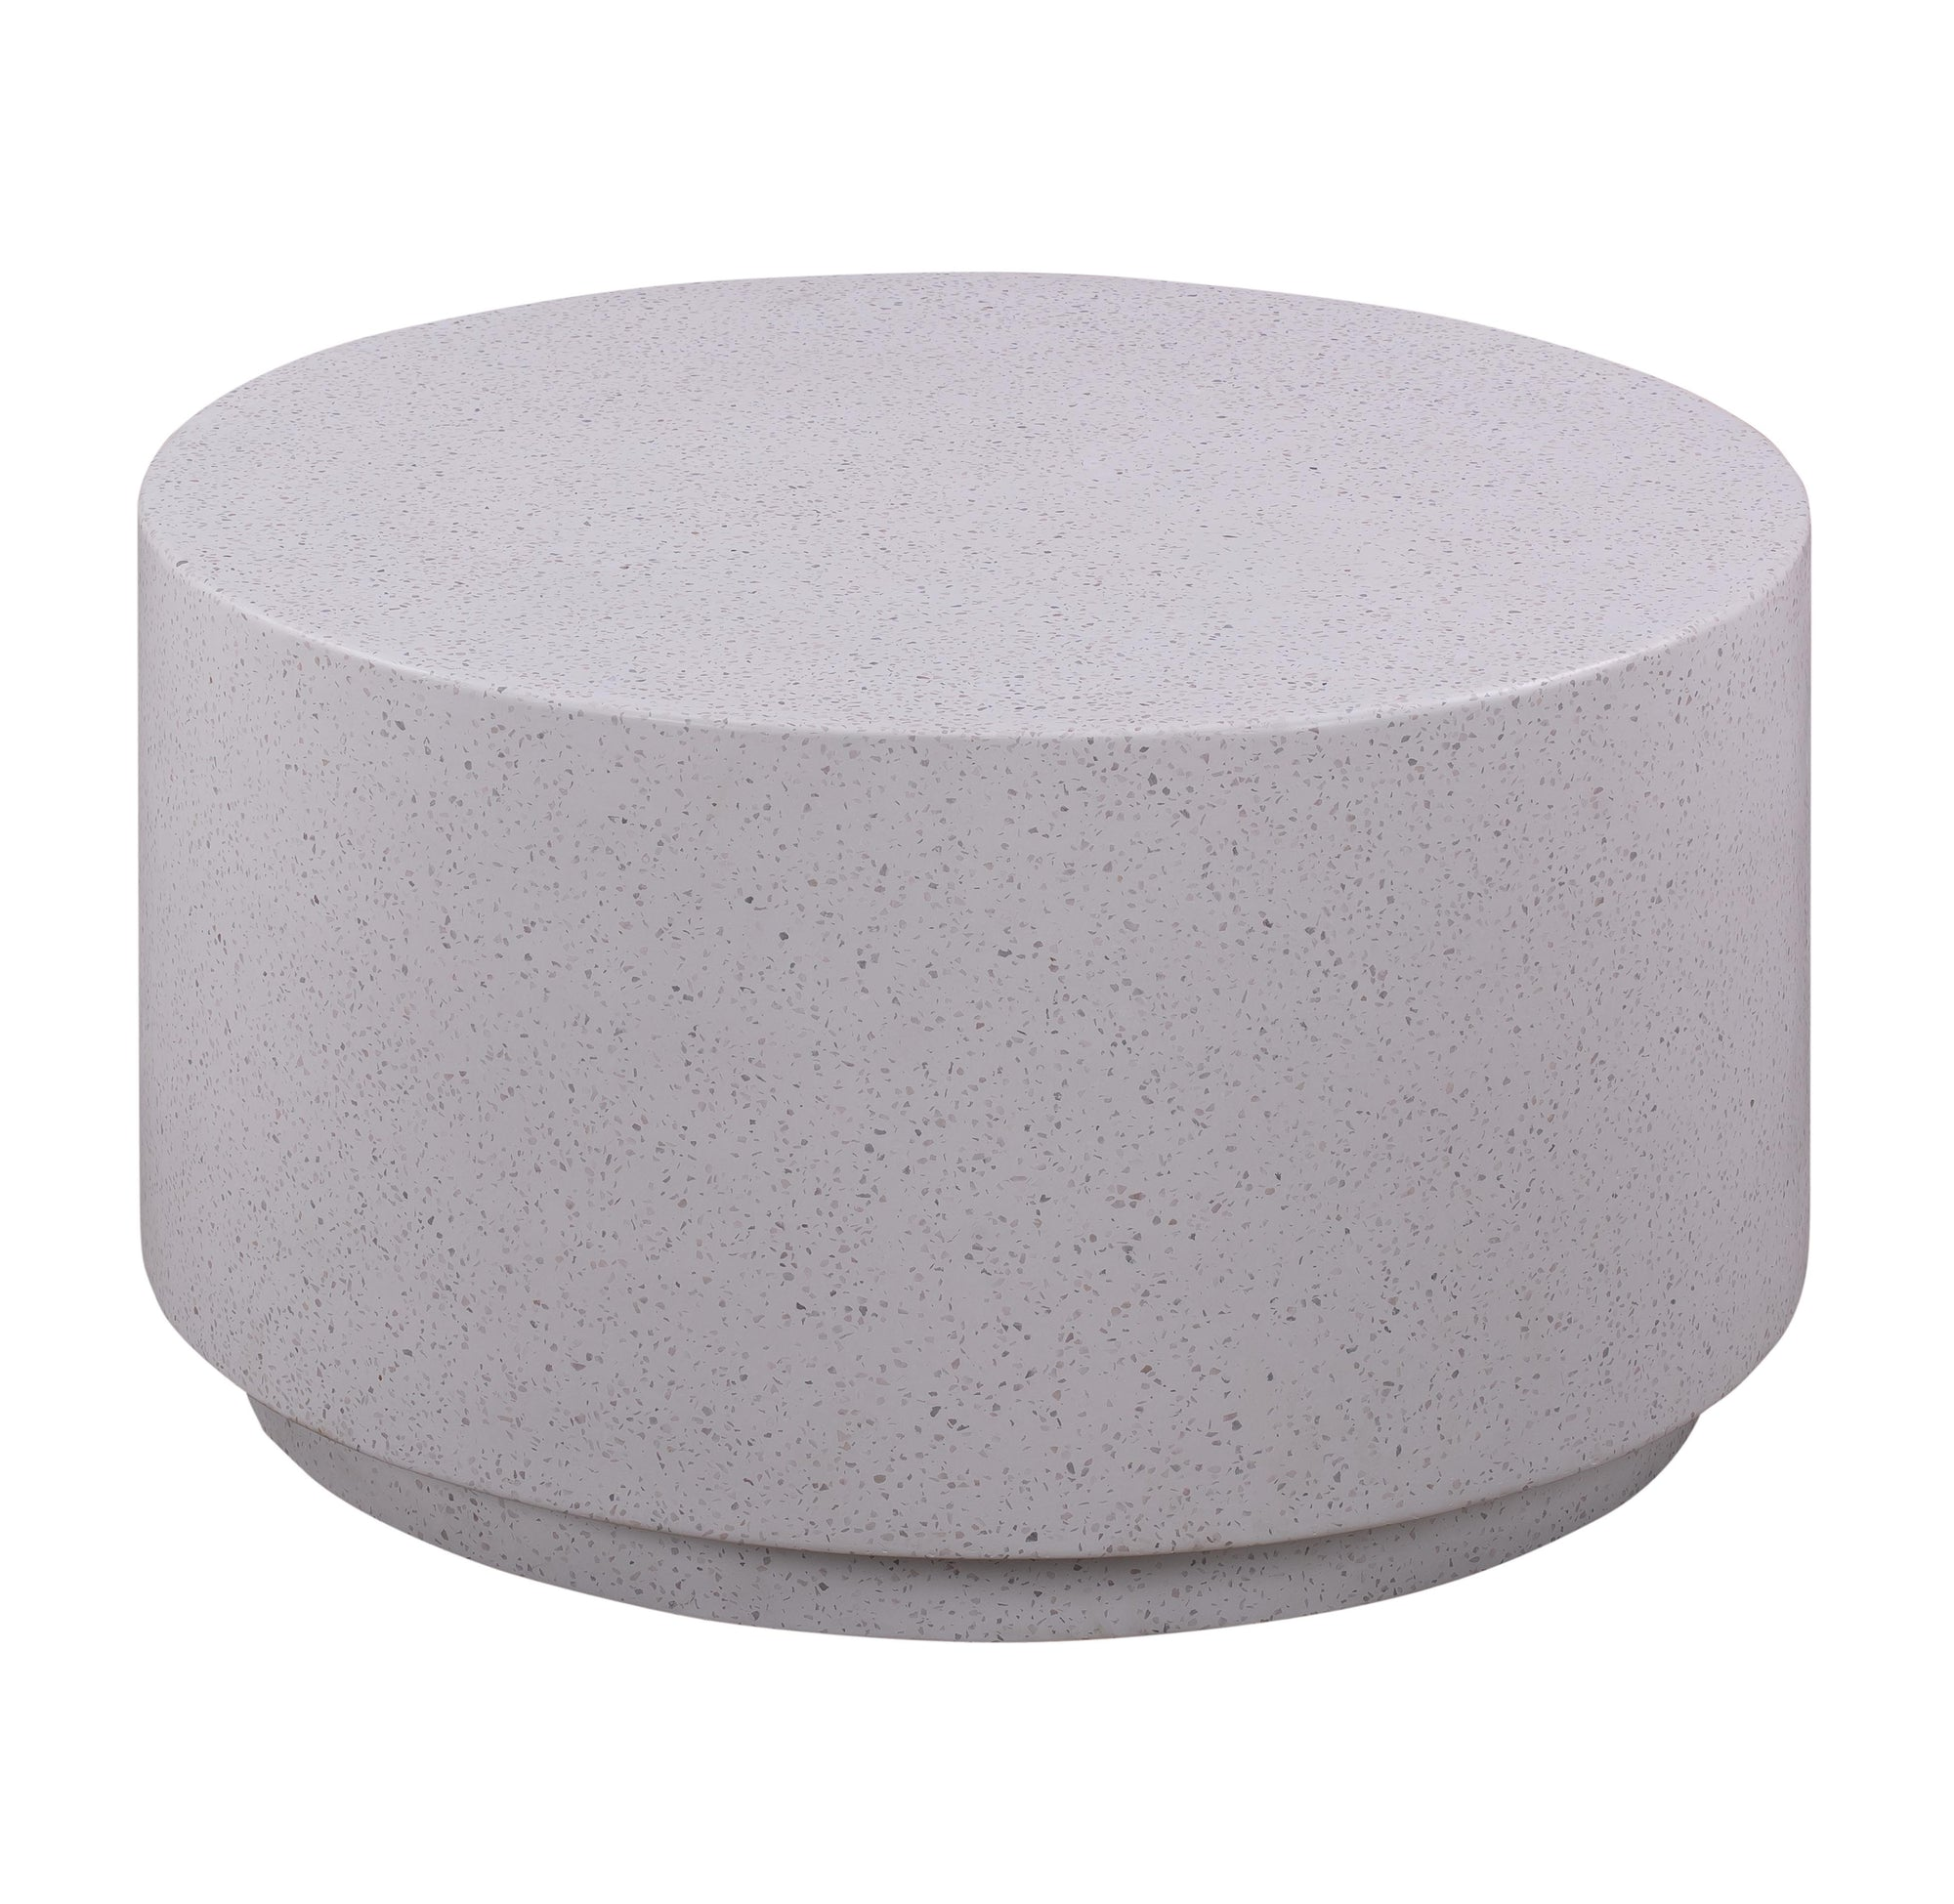 TOV-Terrazzo Light Speckled Coffee Table-Coffee Tables-MODTEMPO